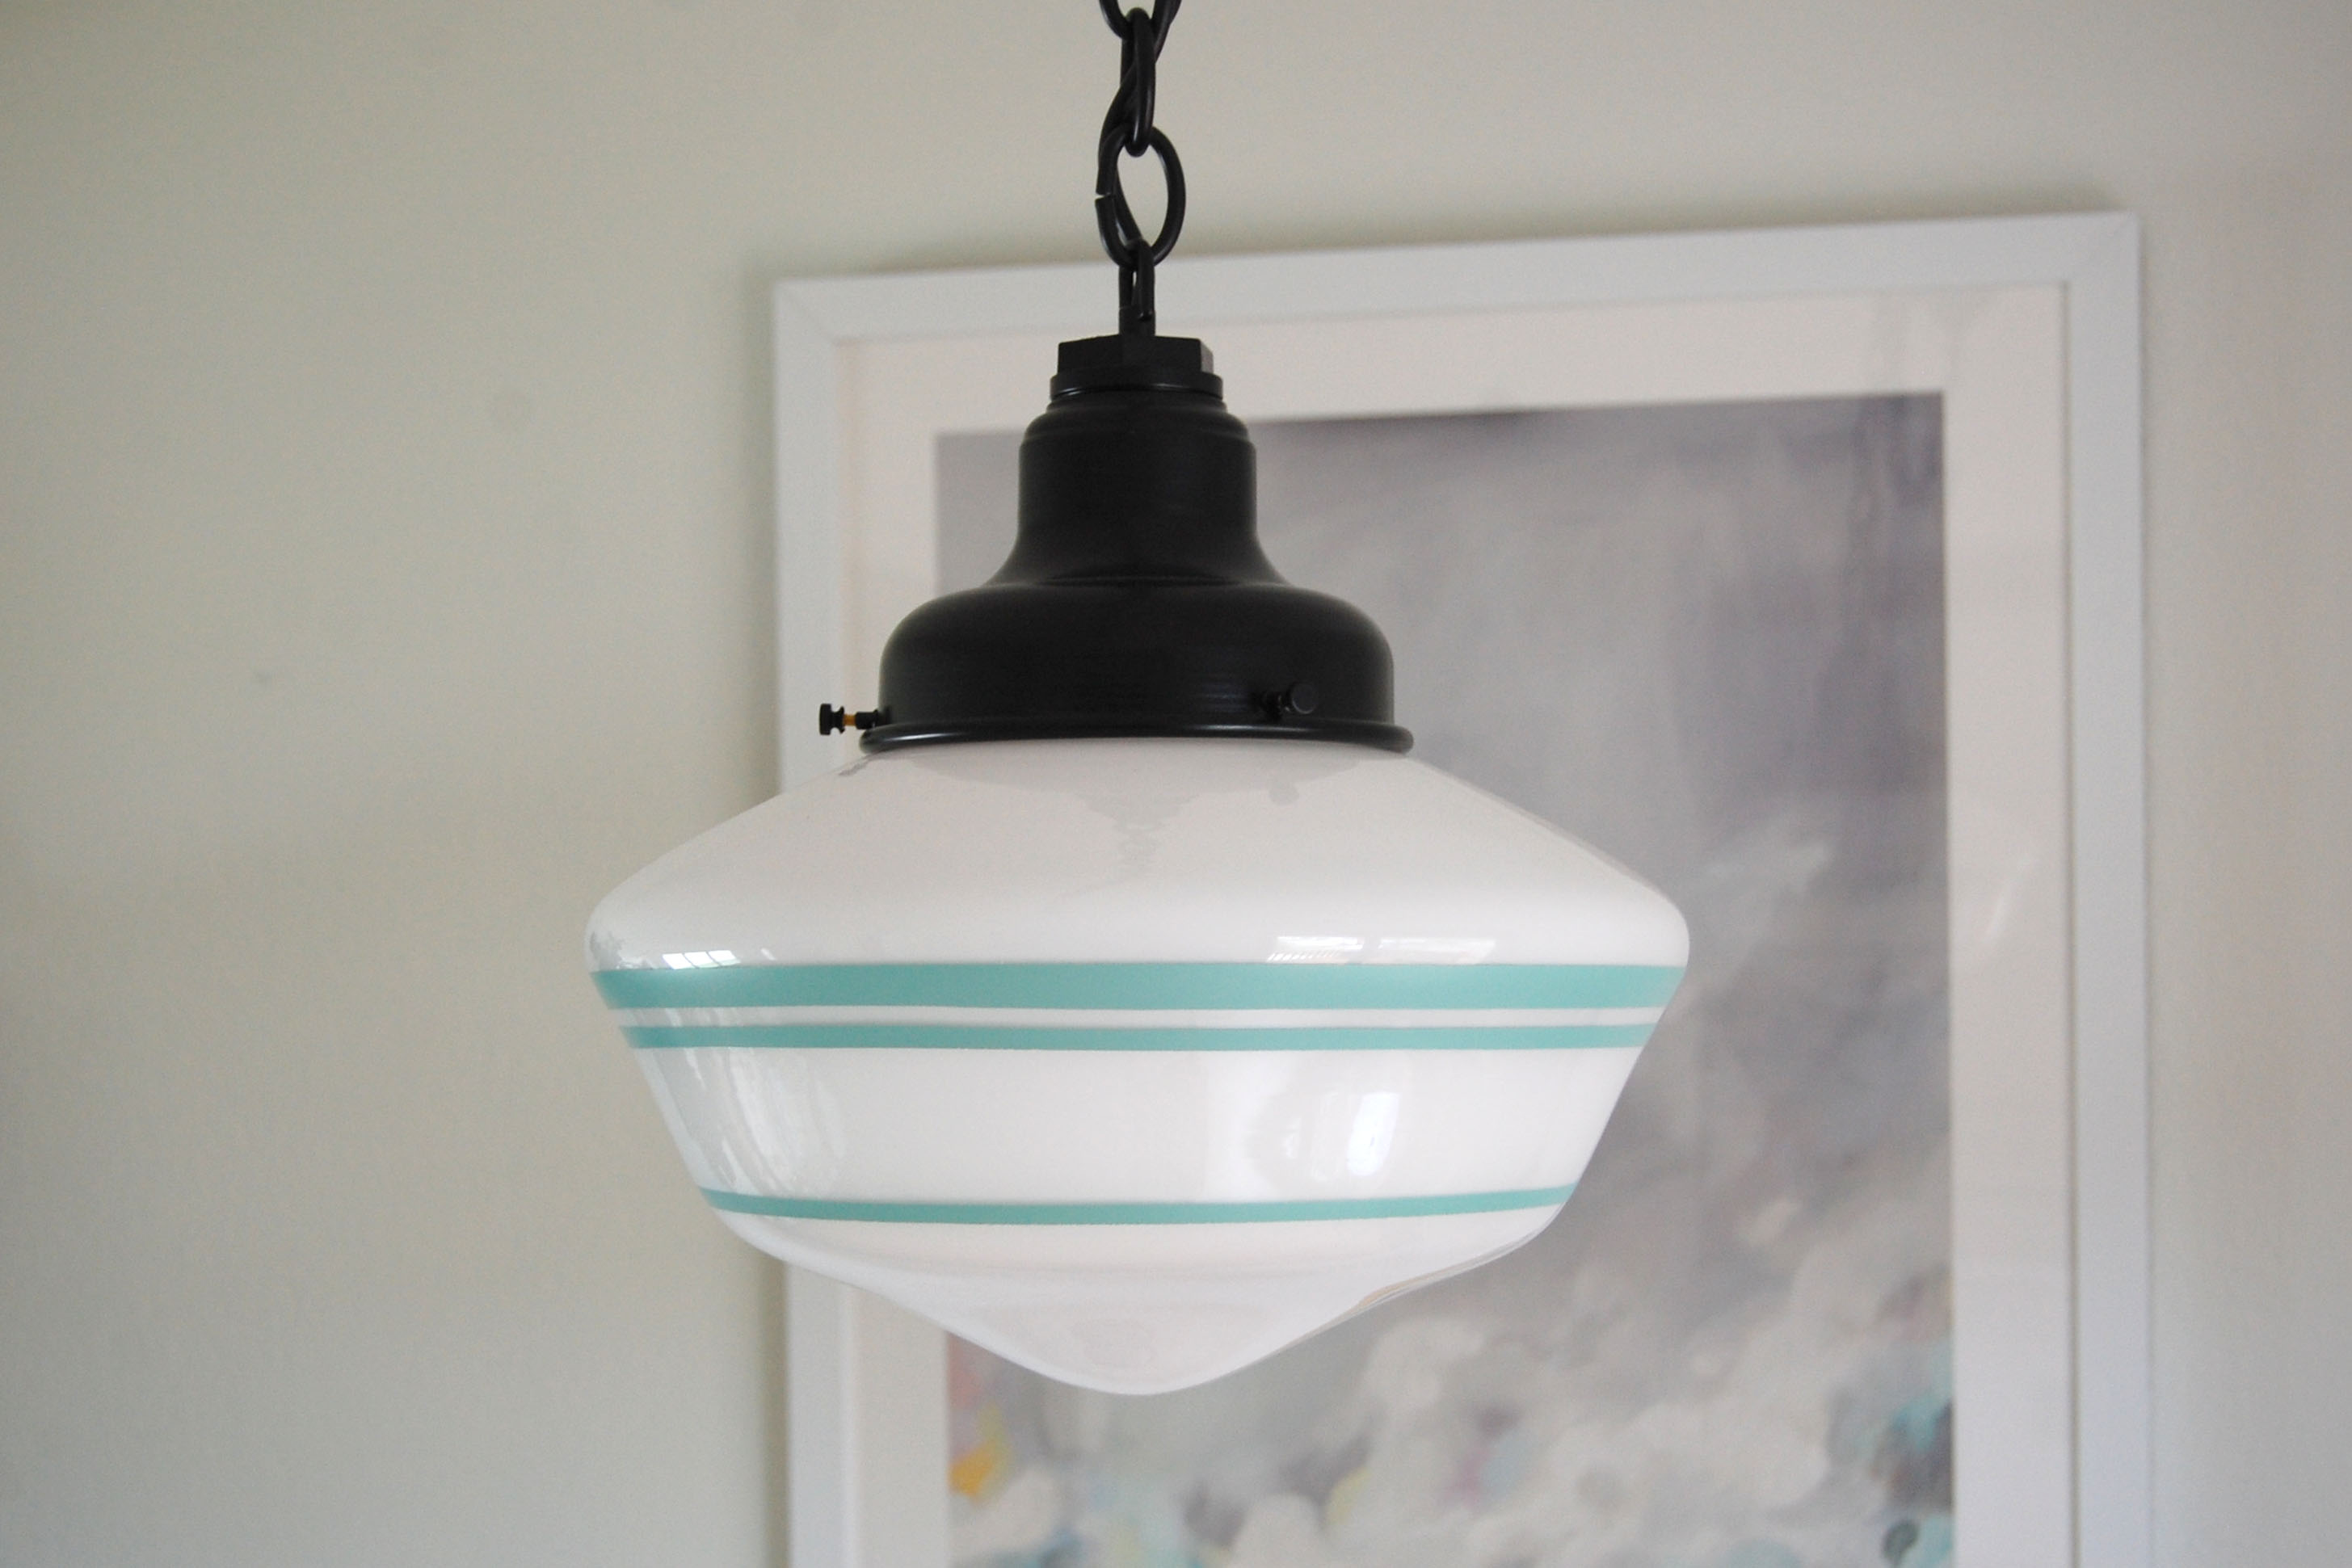 Chain Hung Pendant Lighting Offers